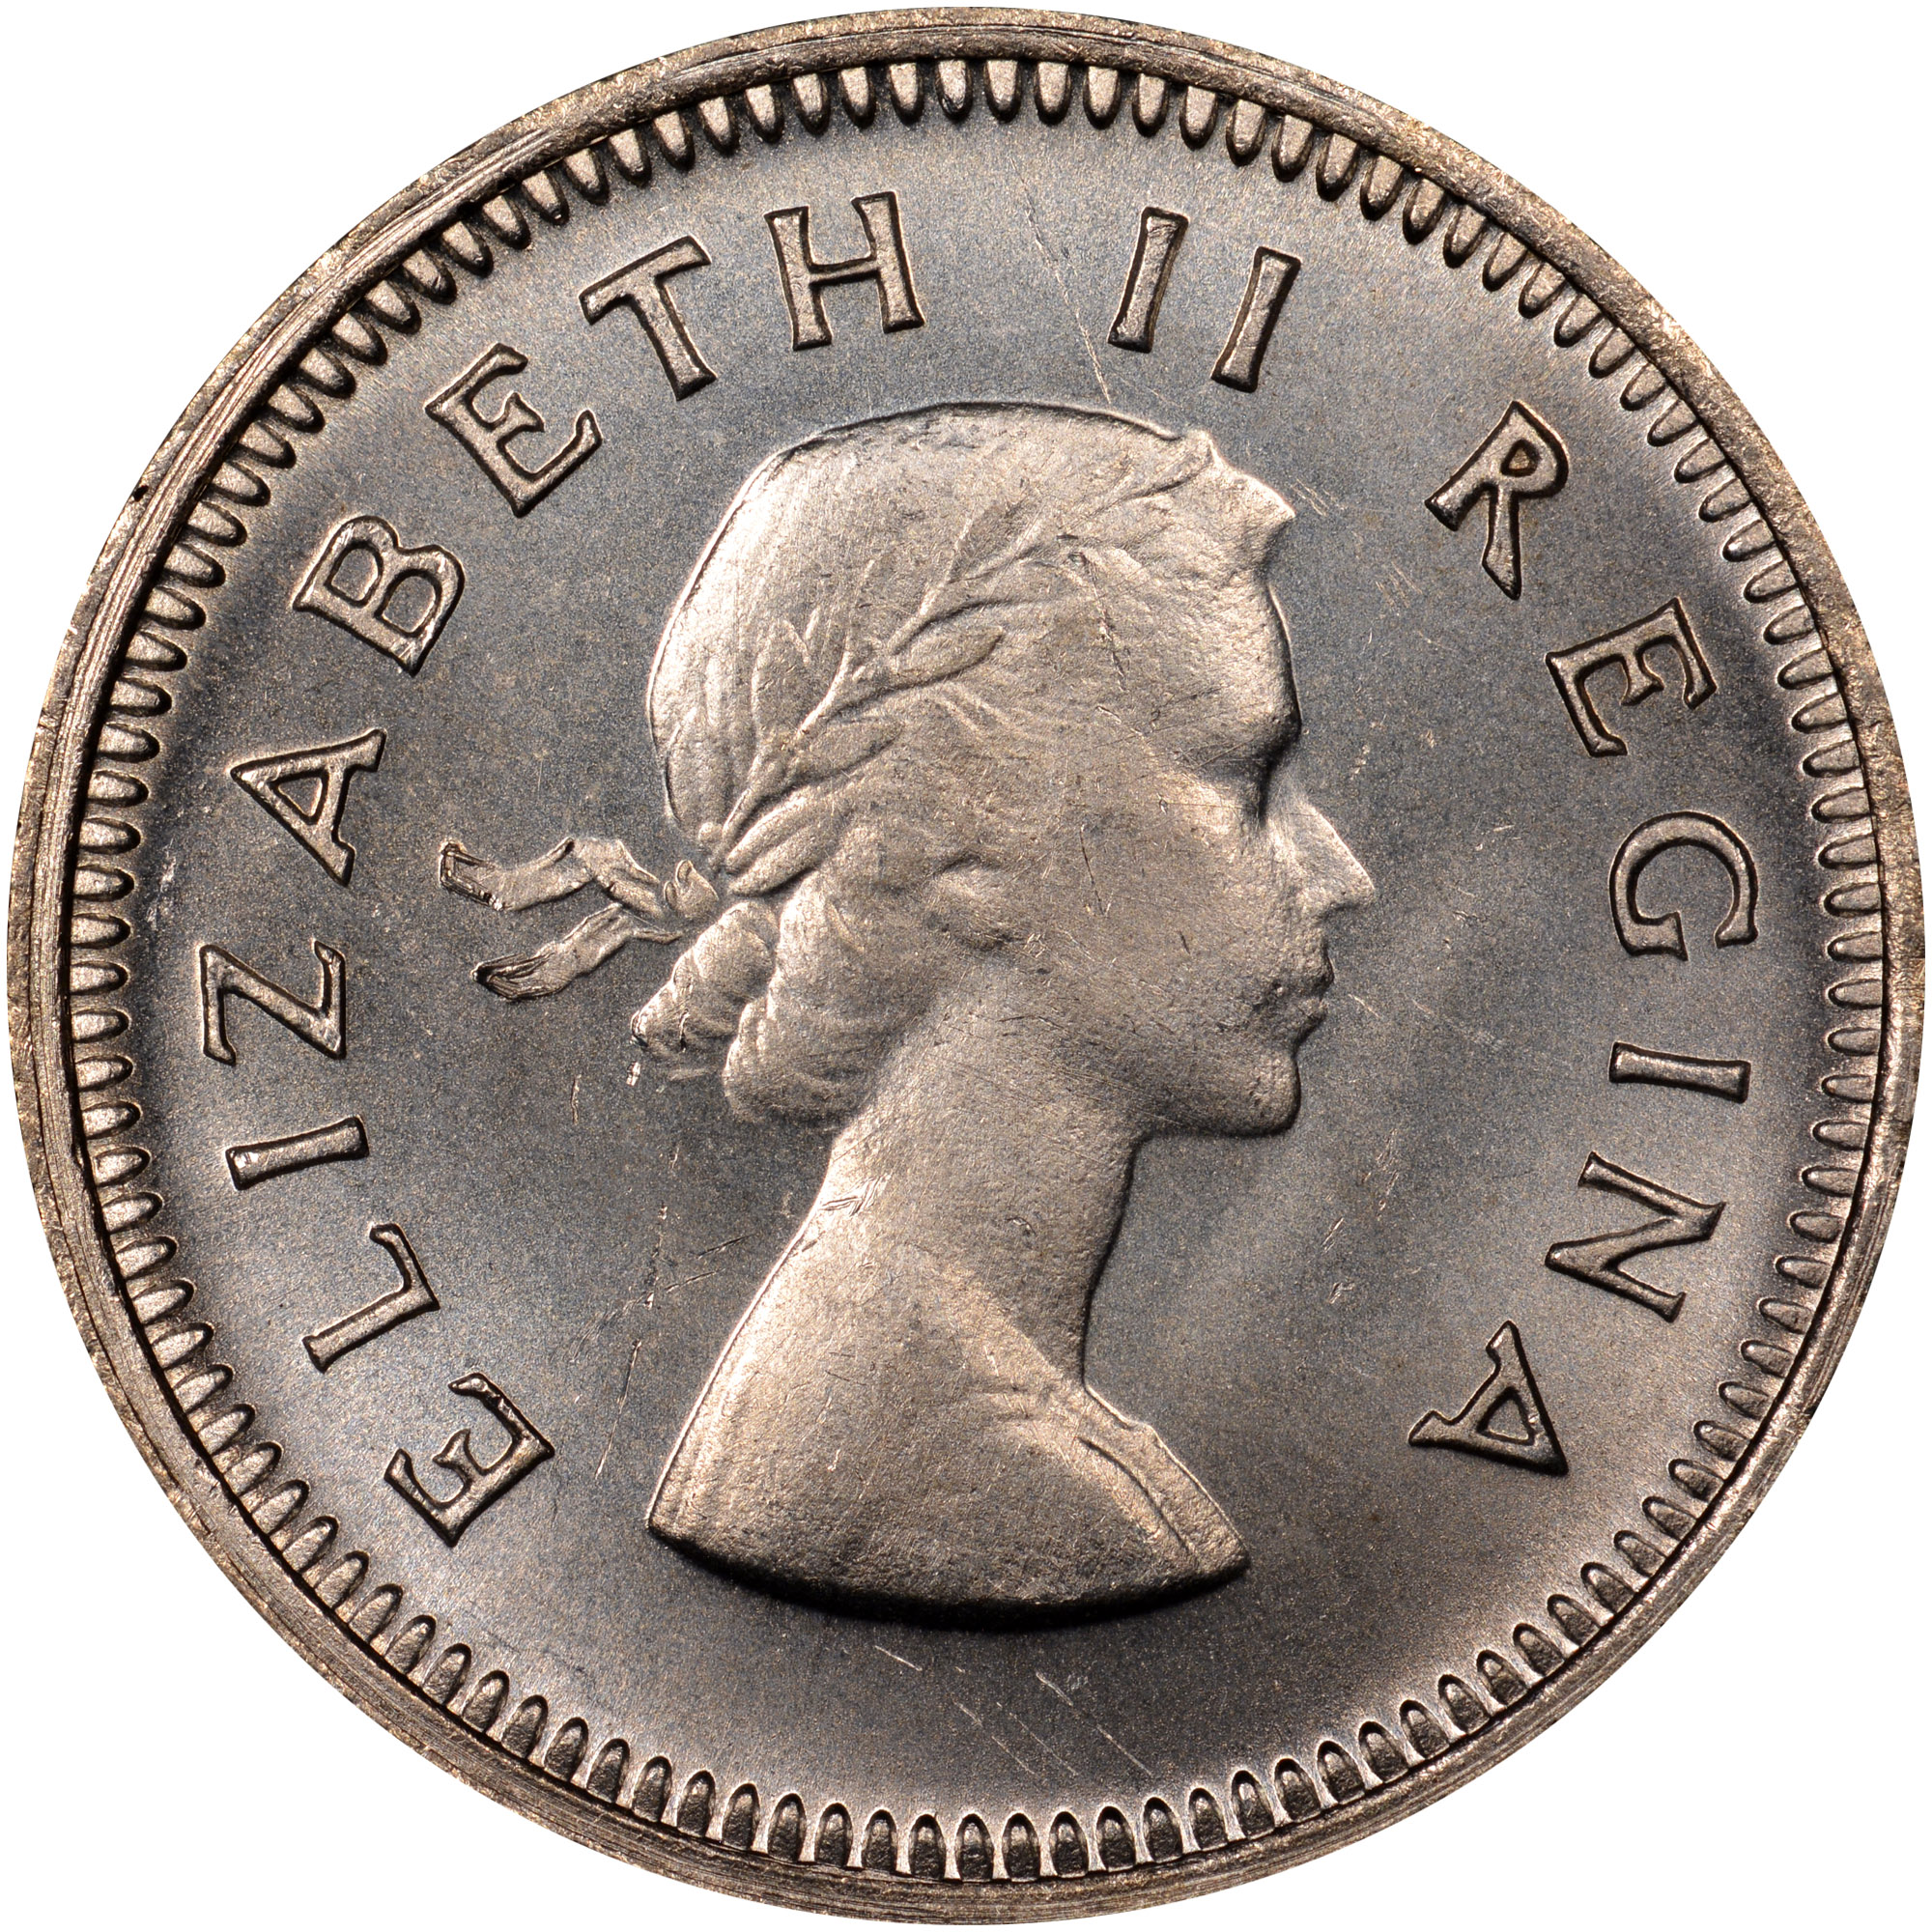 South Africa 3 Pence Km 47 Prices Amp Values